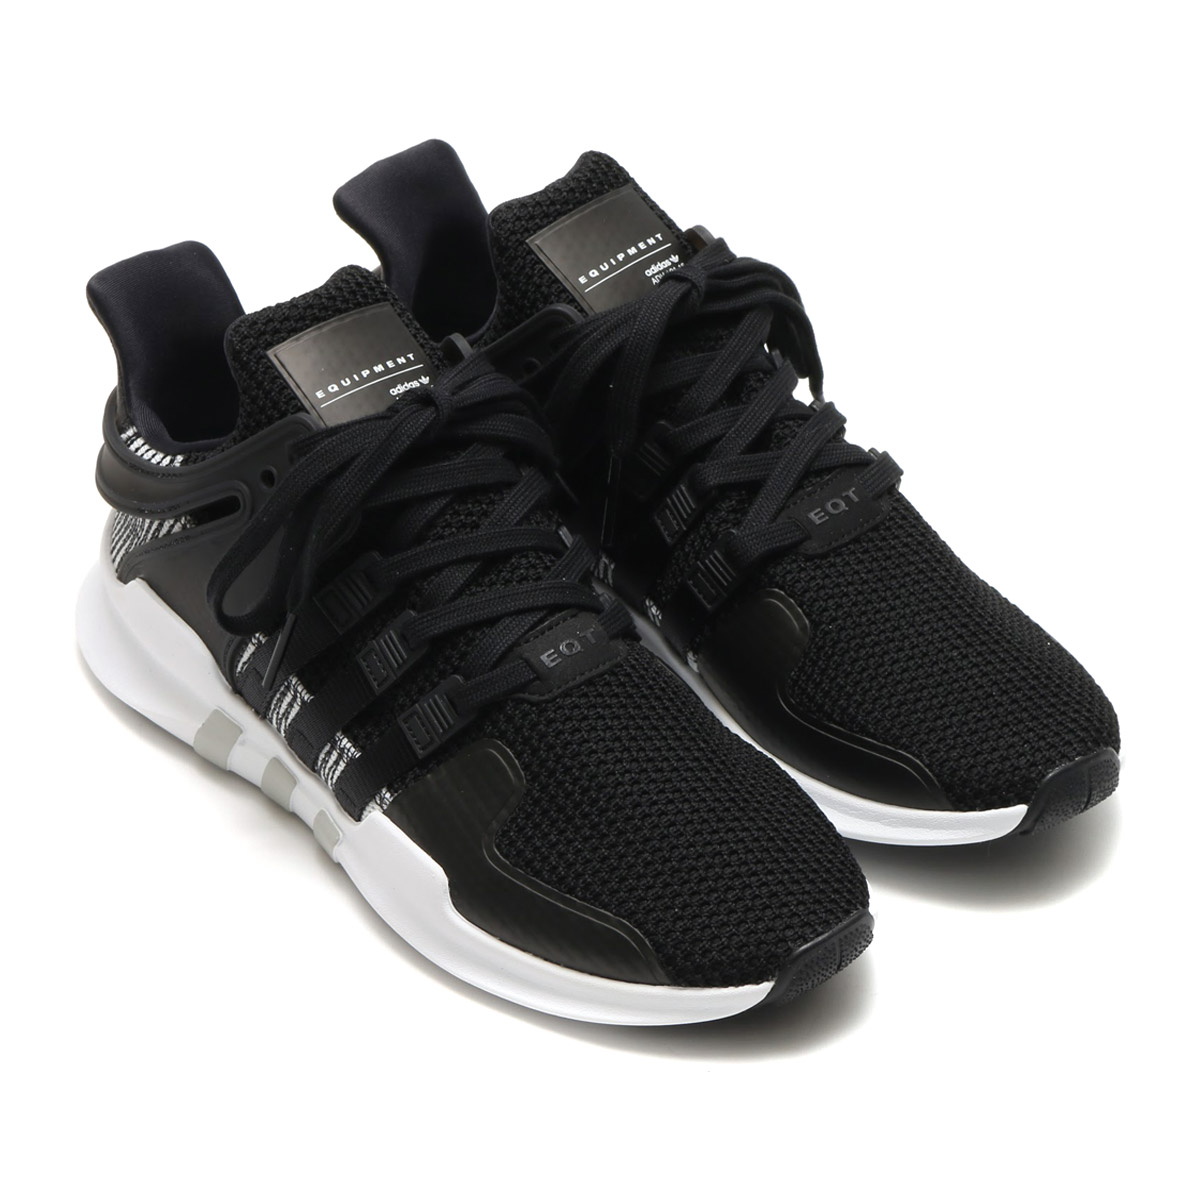 adidas Originals EQT SUPPORTADV(アディダス オリジナルス EQT サポートADV)CORE BLACK/CORE BLACK/RUNNING WHITE【メンズ スニーカー】17FW-I